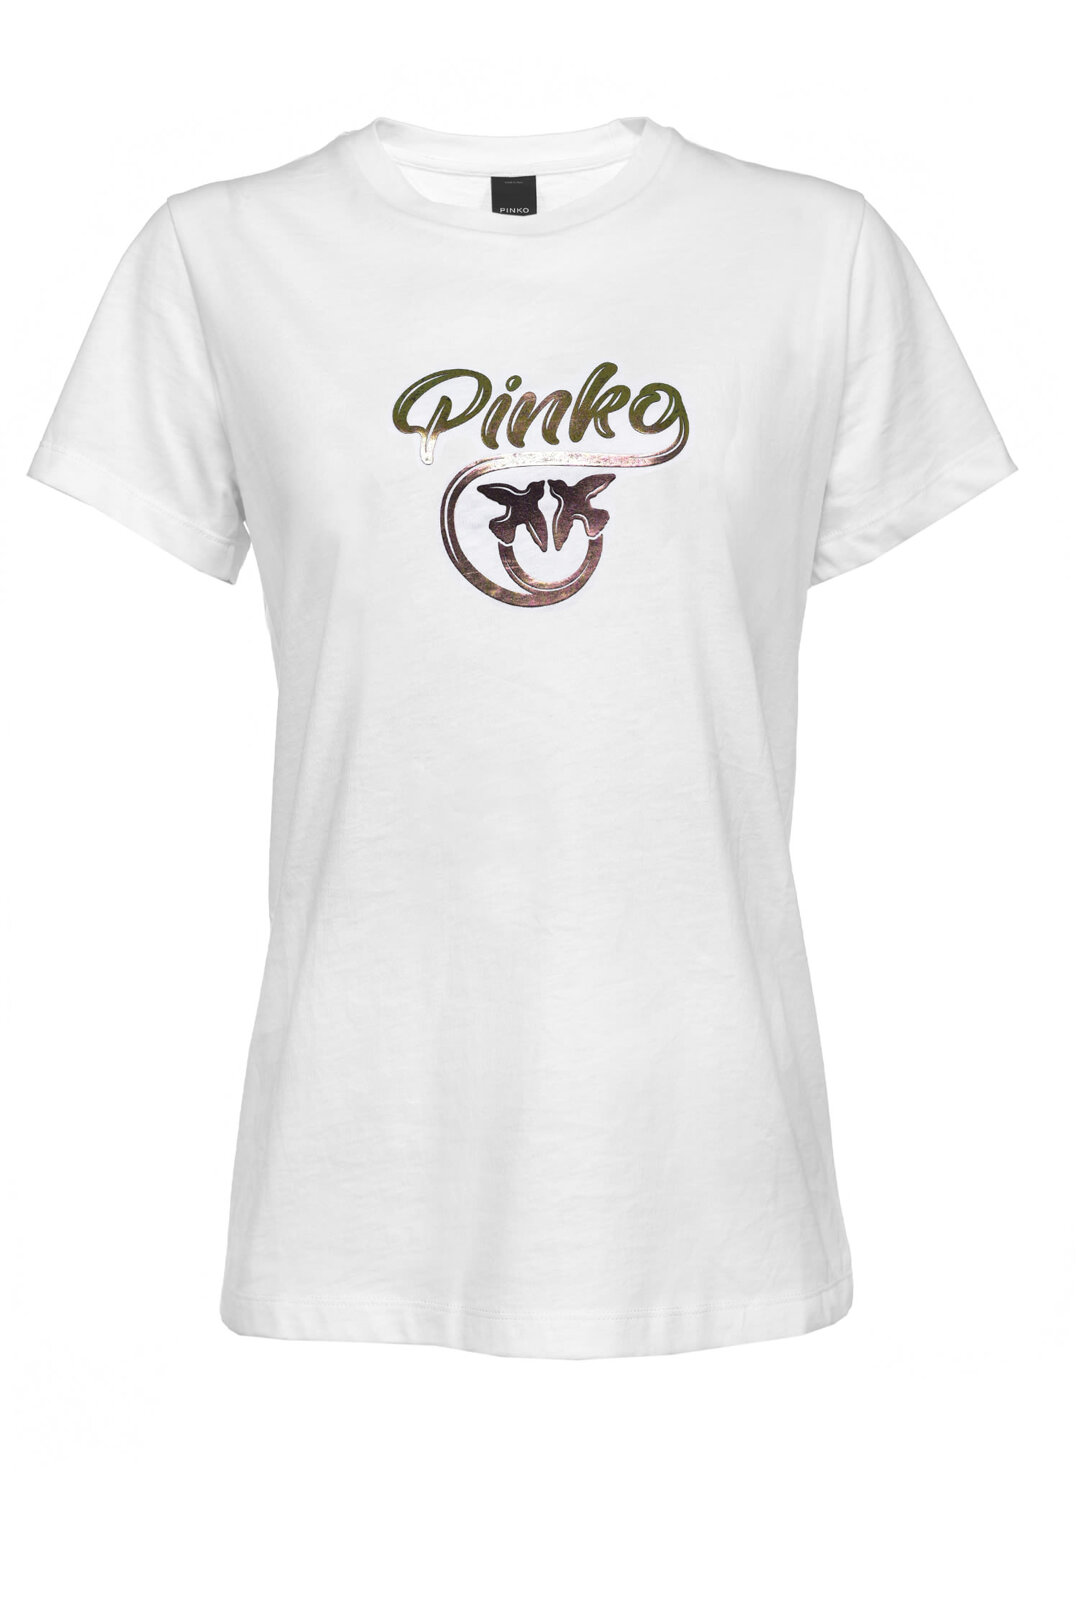 Pinko Love Birds T-Shirt - Pinko